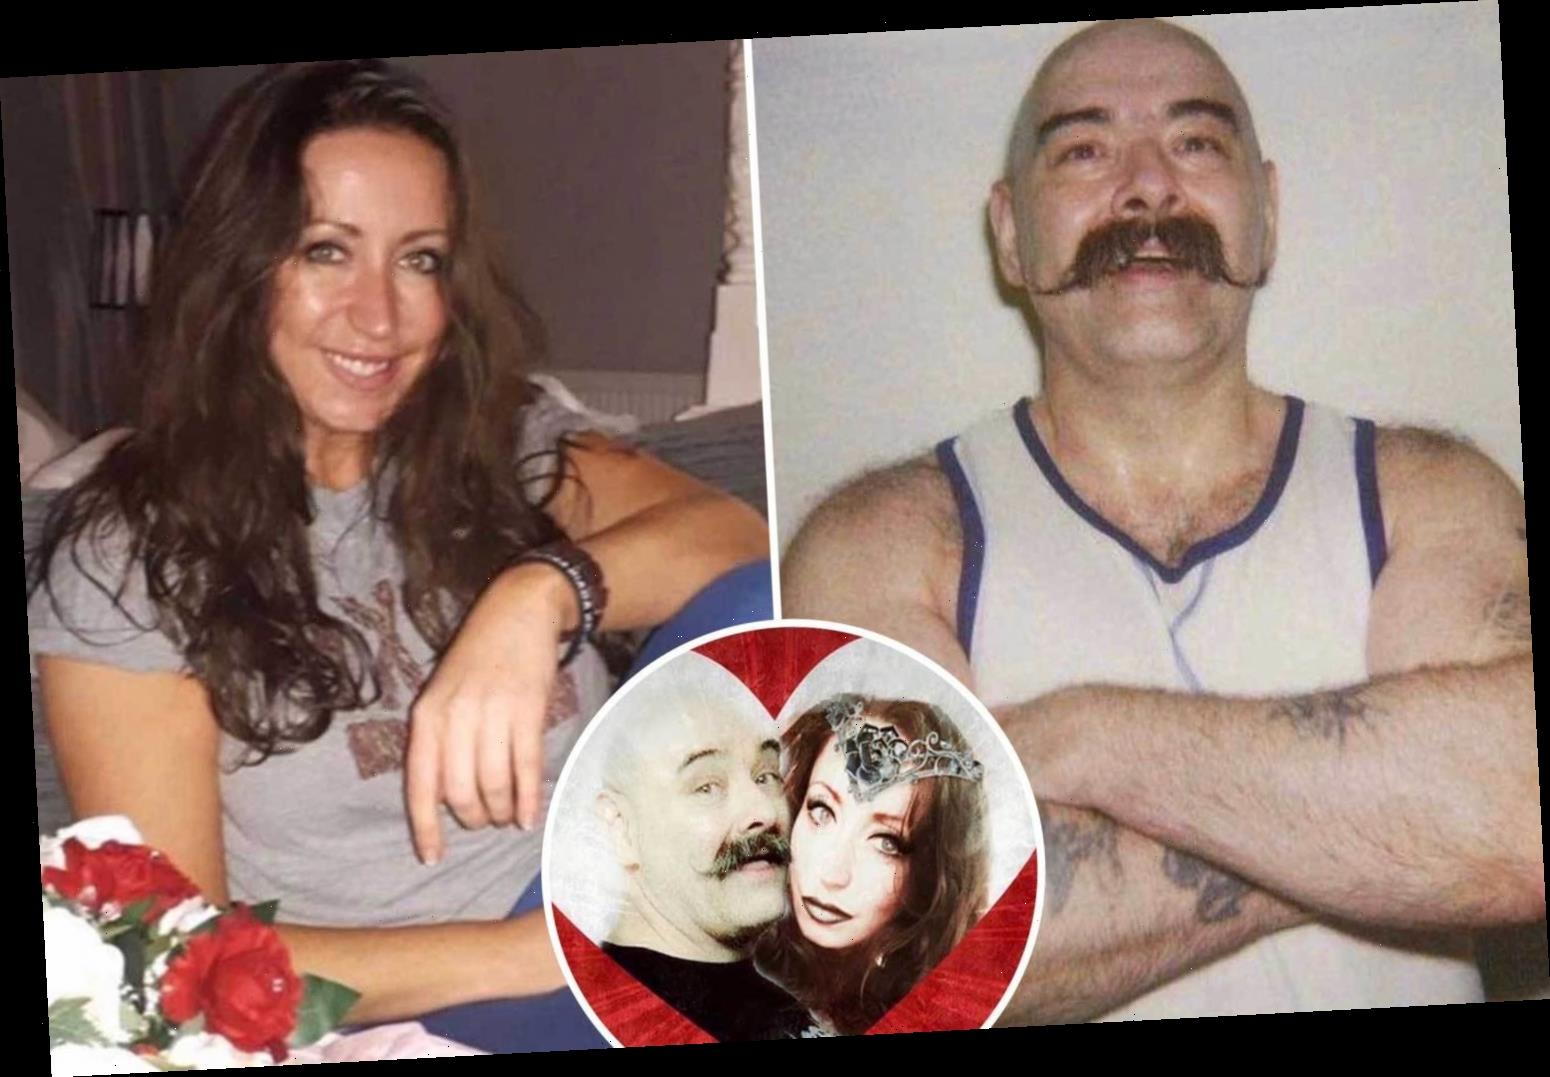 Charles Bronson says he would have hunted down 'scumbag' who gave ex-wife Paula Williamson drugs before her death